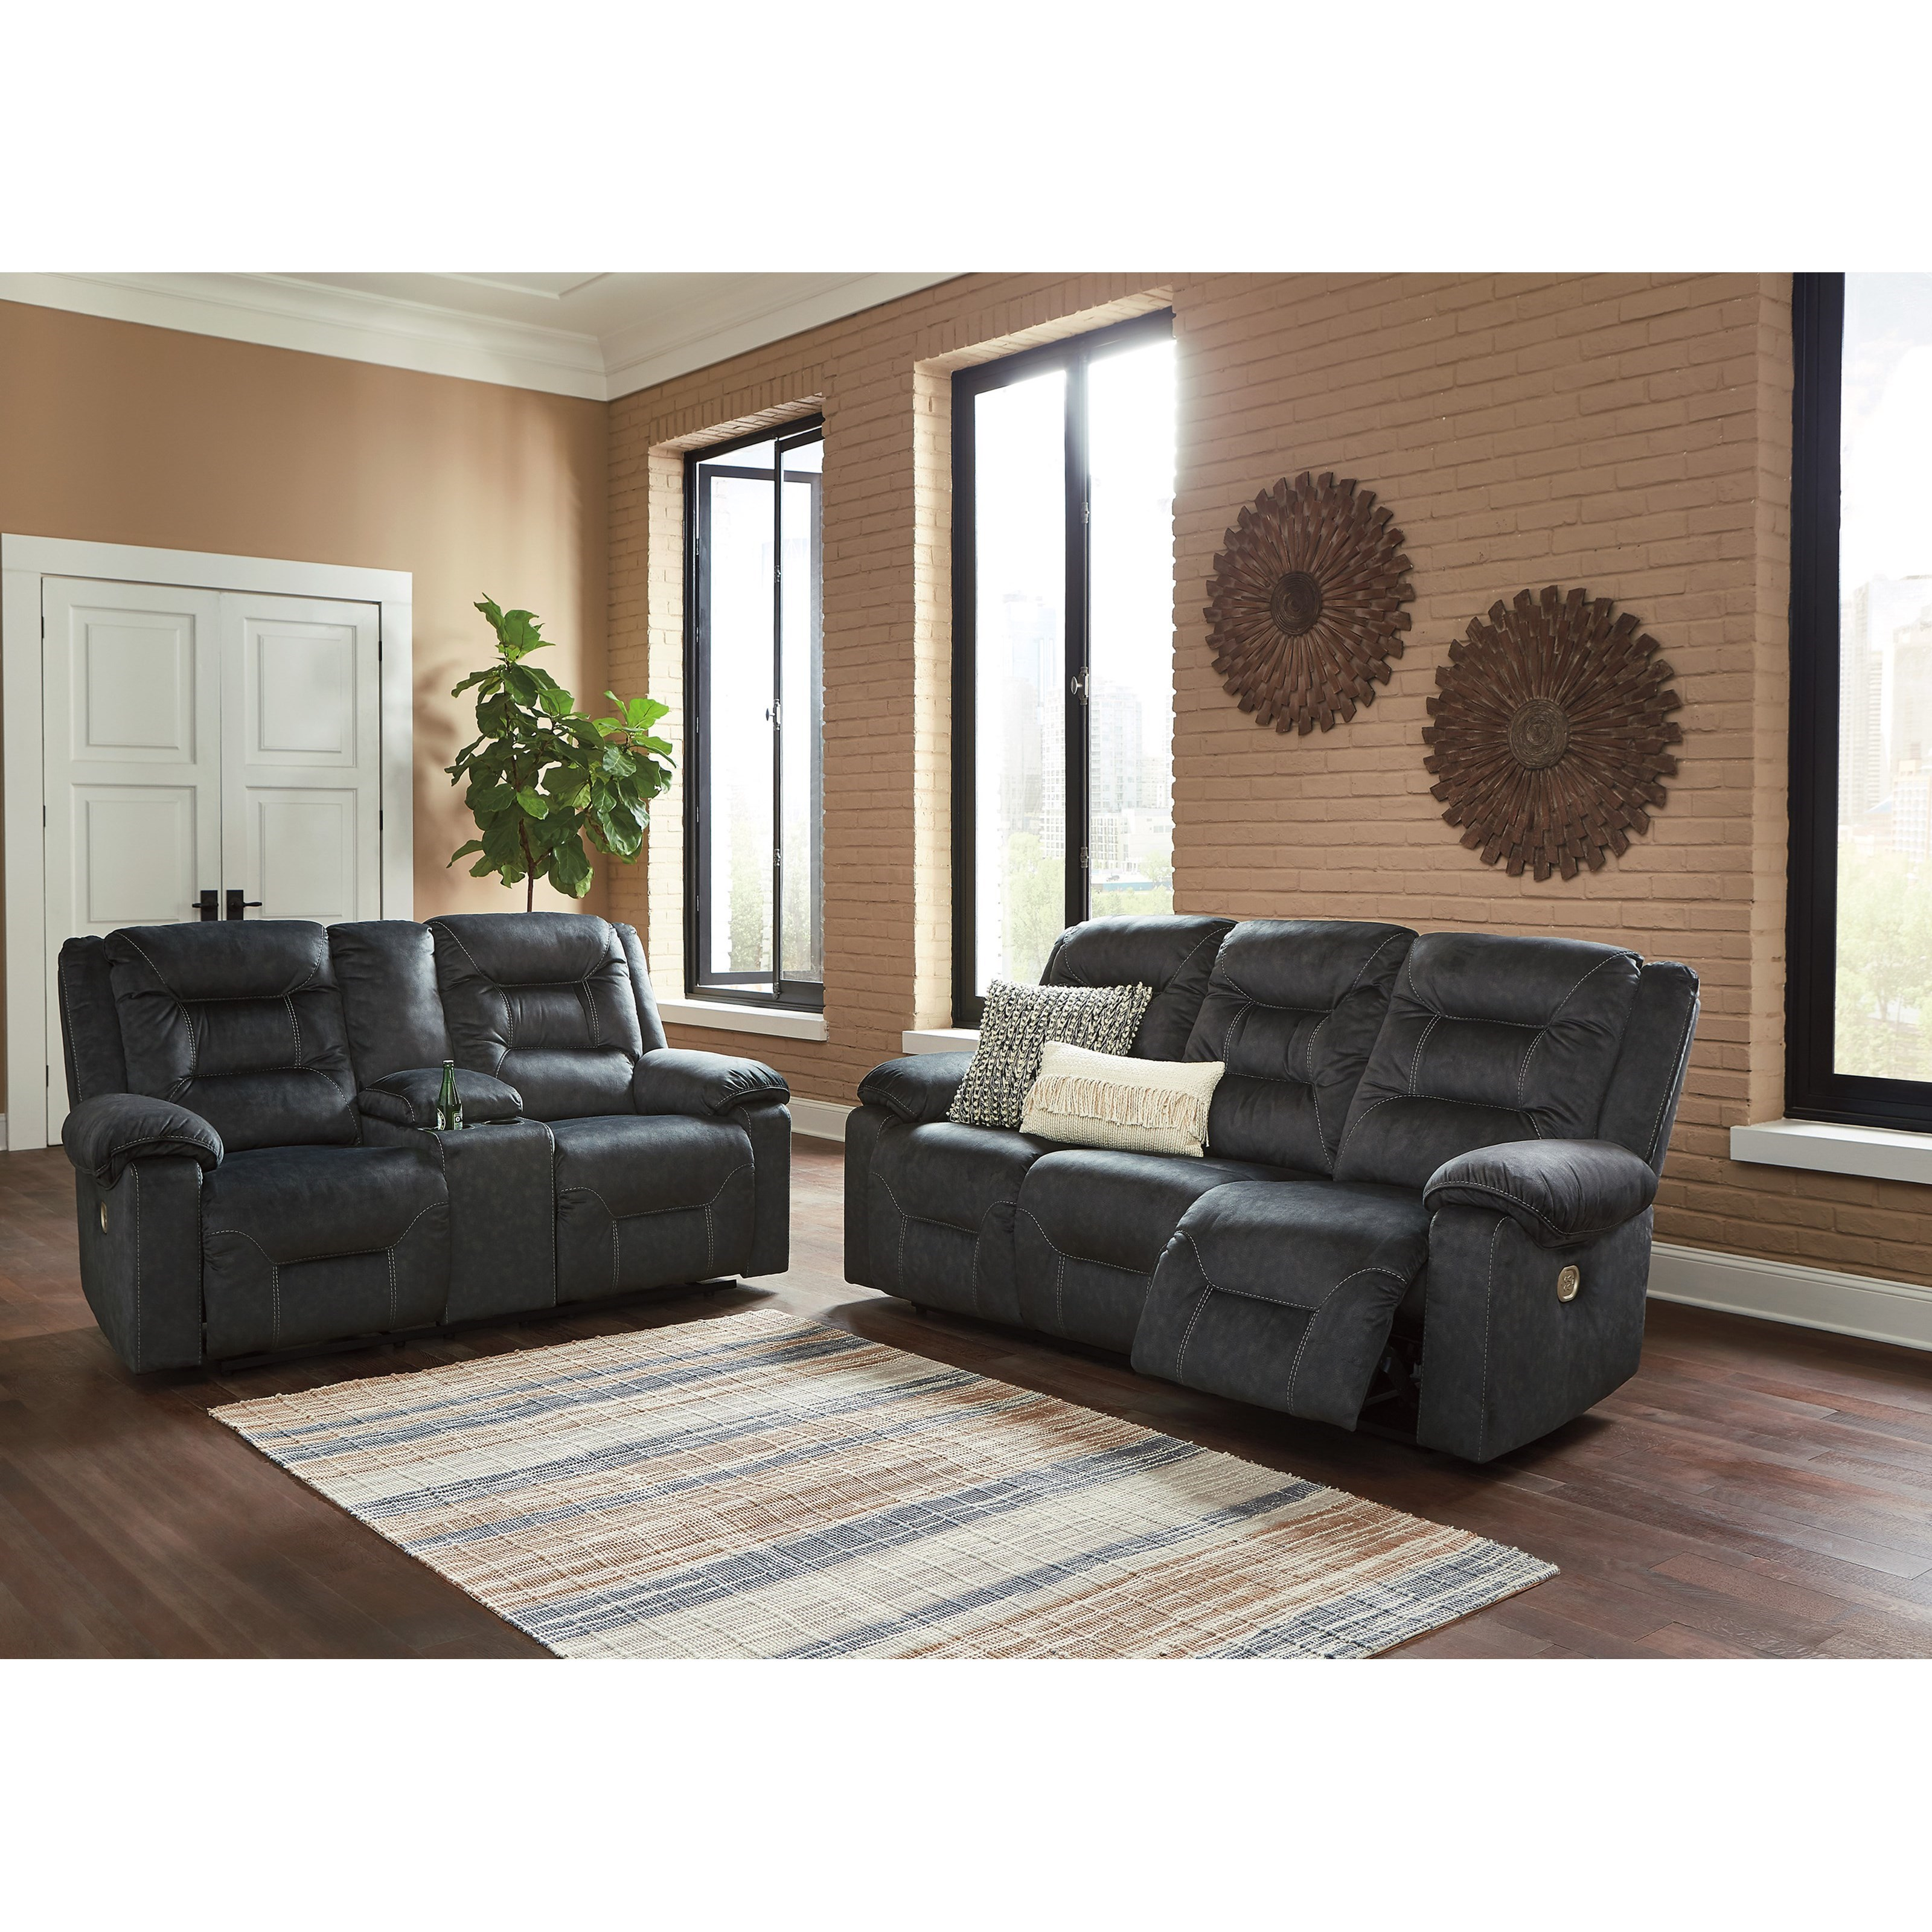 Signature Design by Ashley Waldheim Reclining Living Room Group - Item Number: 81502 Living Room Group 1